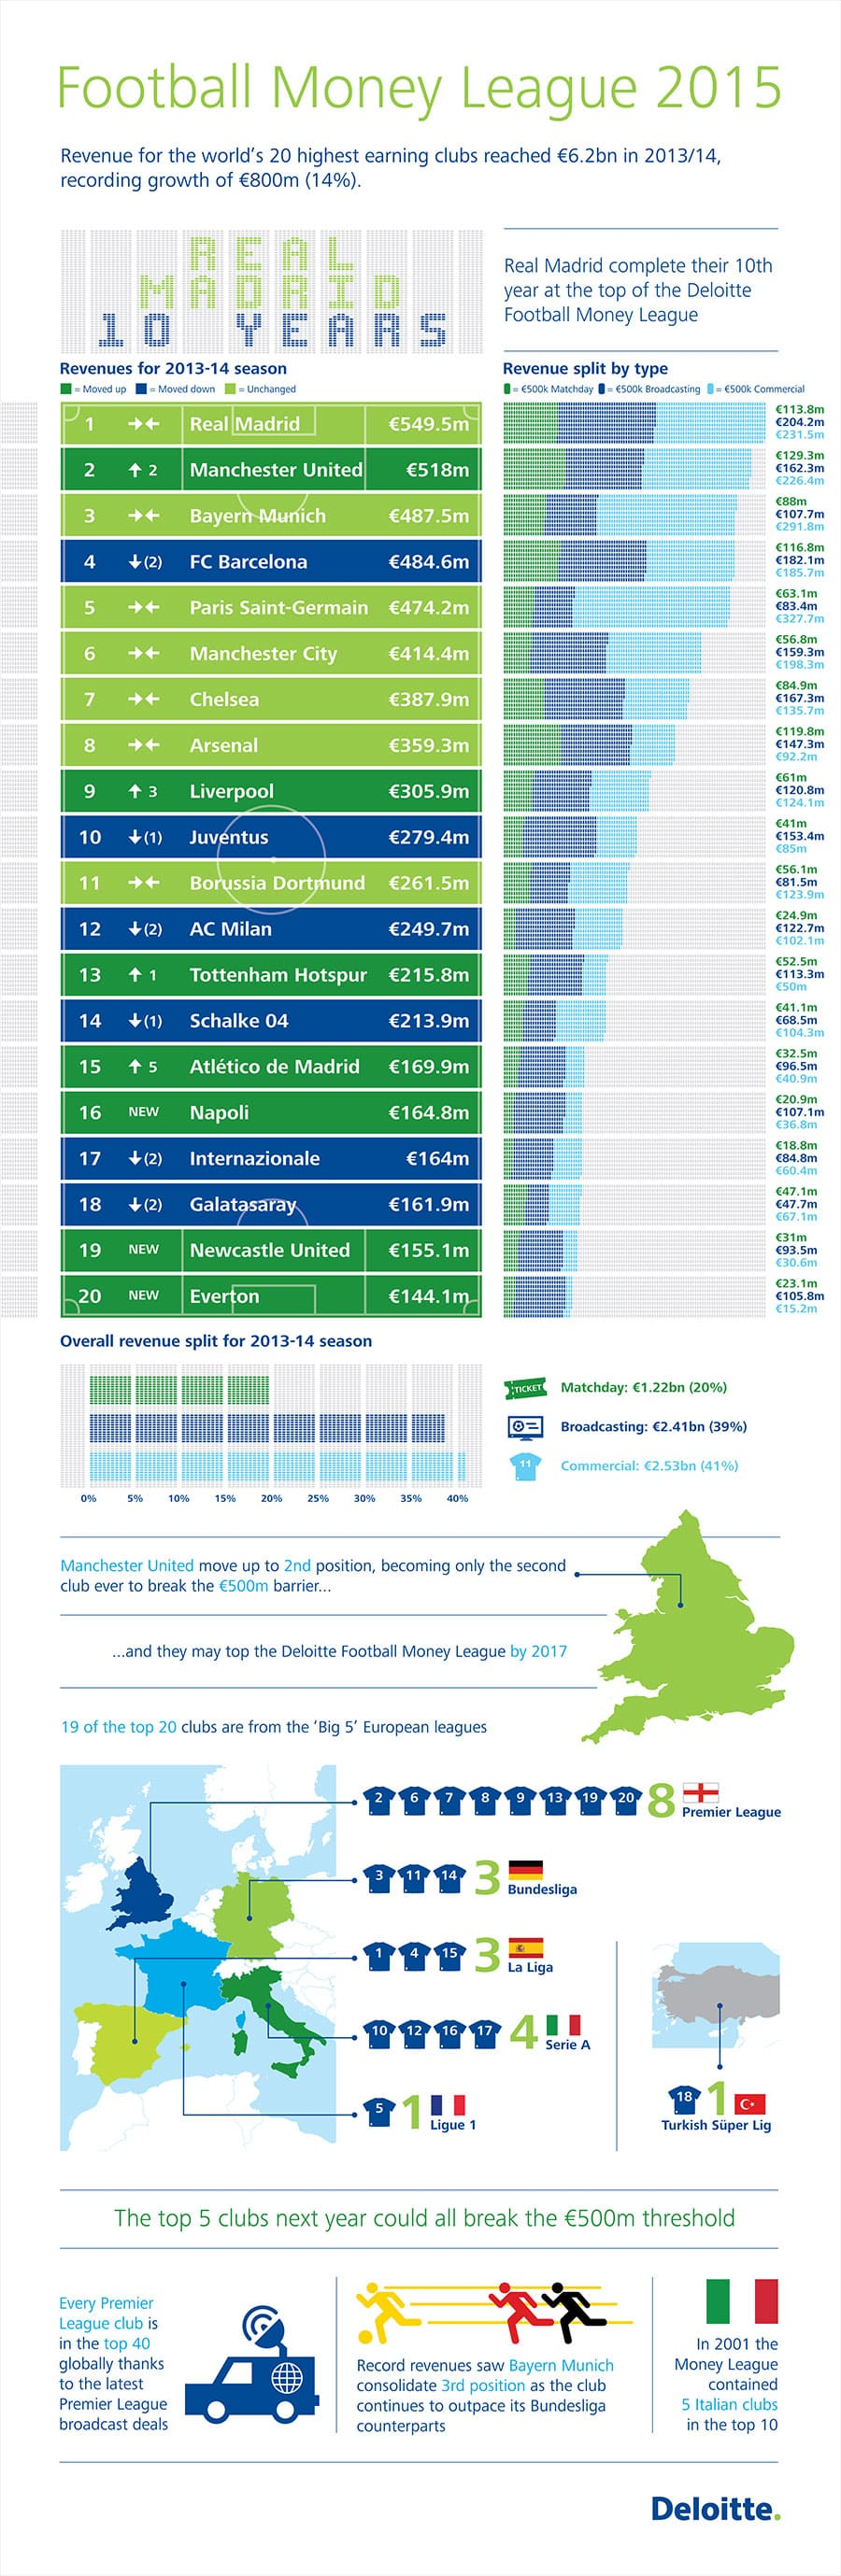 Deloitte Football Money League 2015 infographic